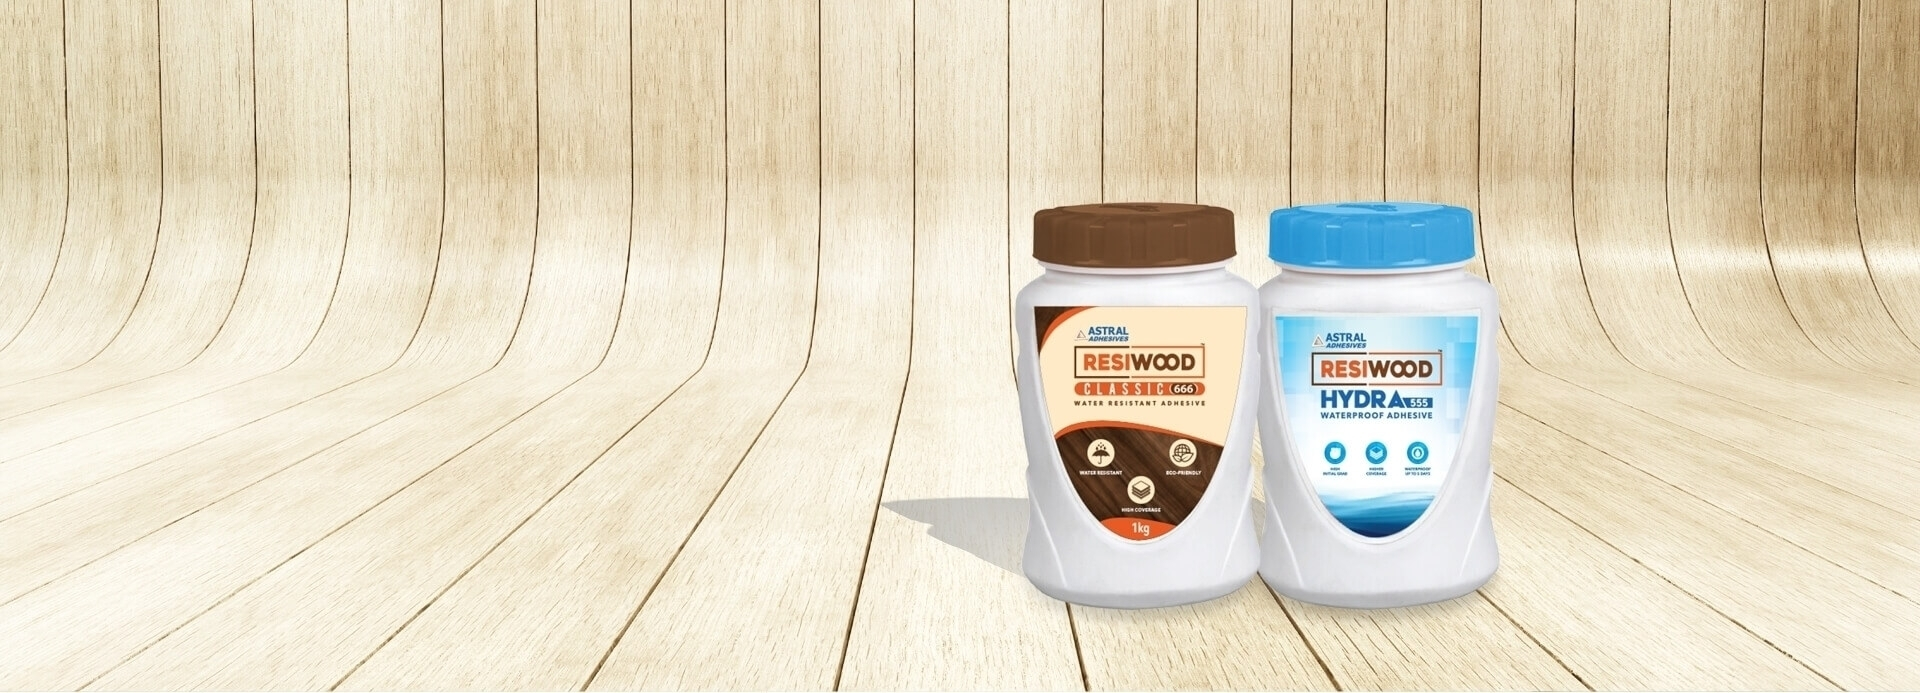 THE BEST ADHESIVE FOR WOOD RESIWOOD